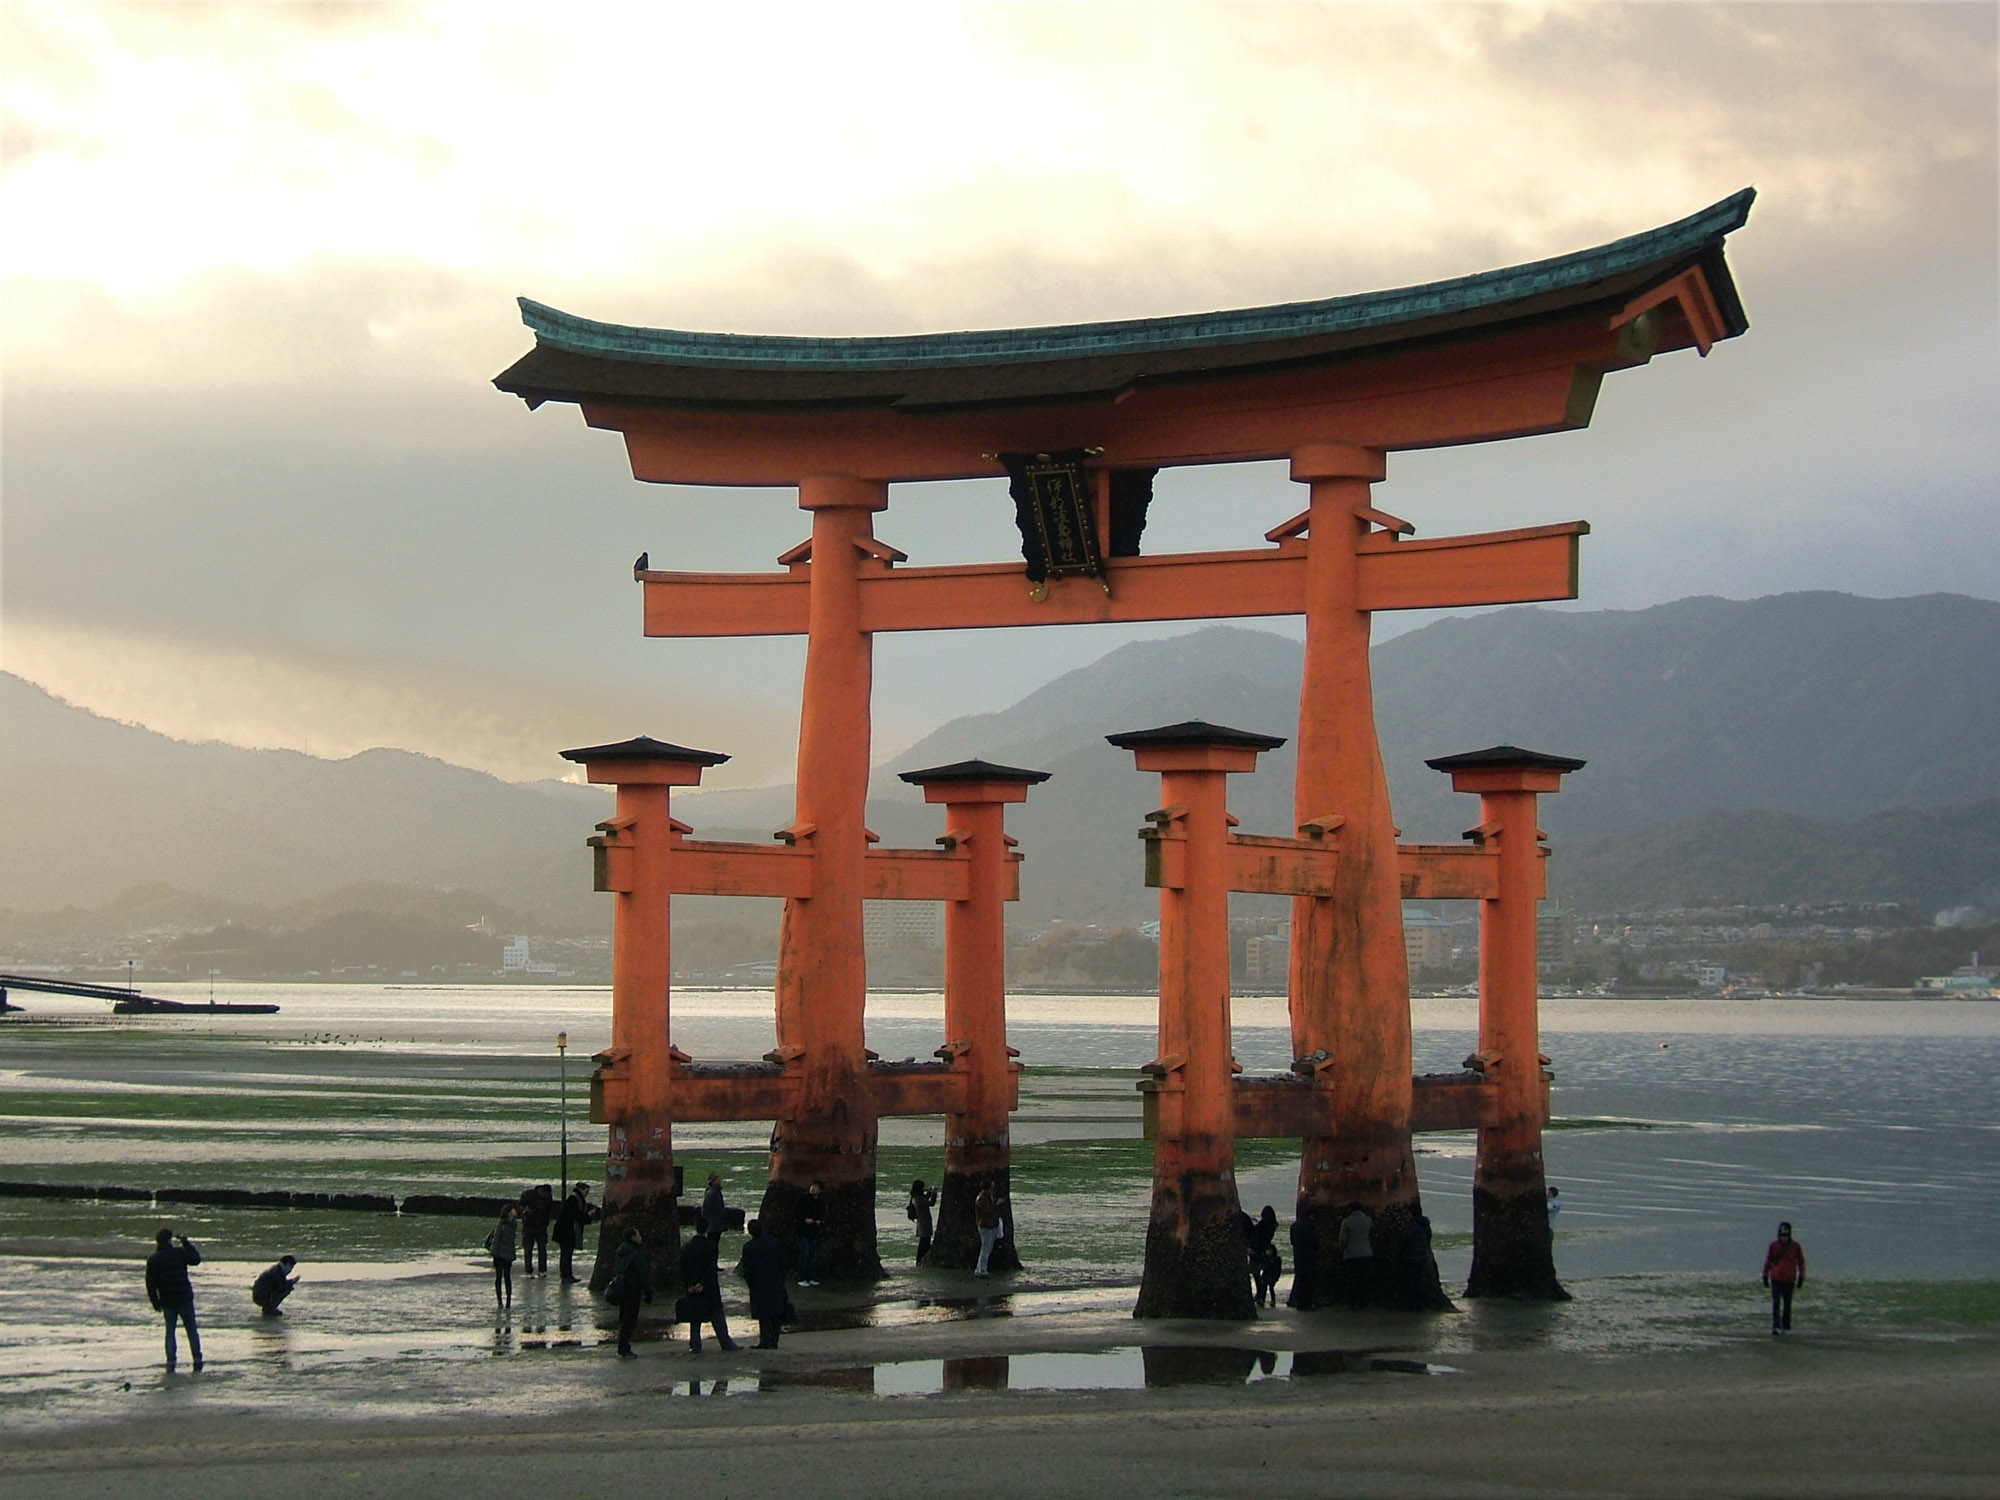 The first great Torii on the site was built in 1168 and the gate you see there today is the 8th iteration built in 1875 A torii is a gate between the everyday world